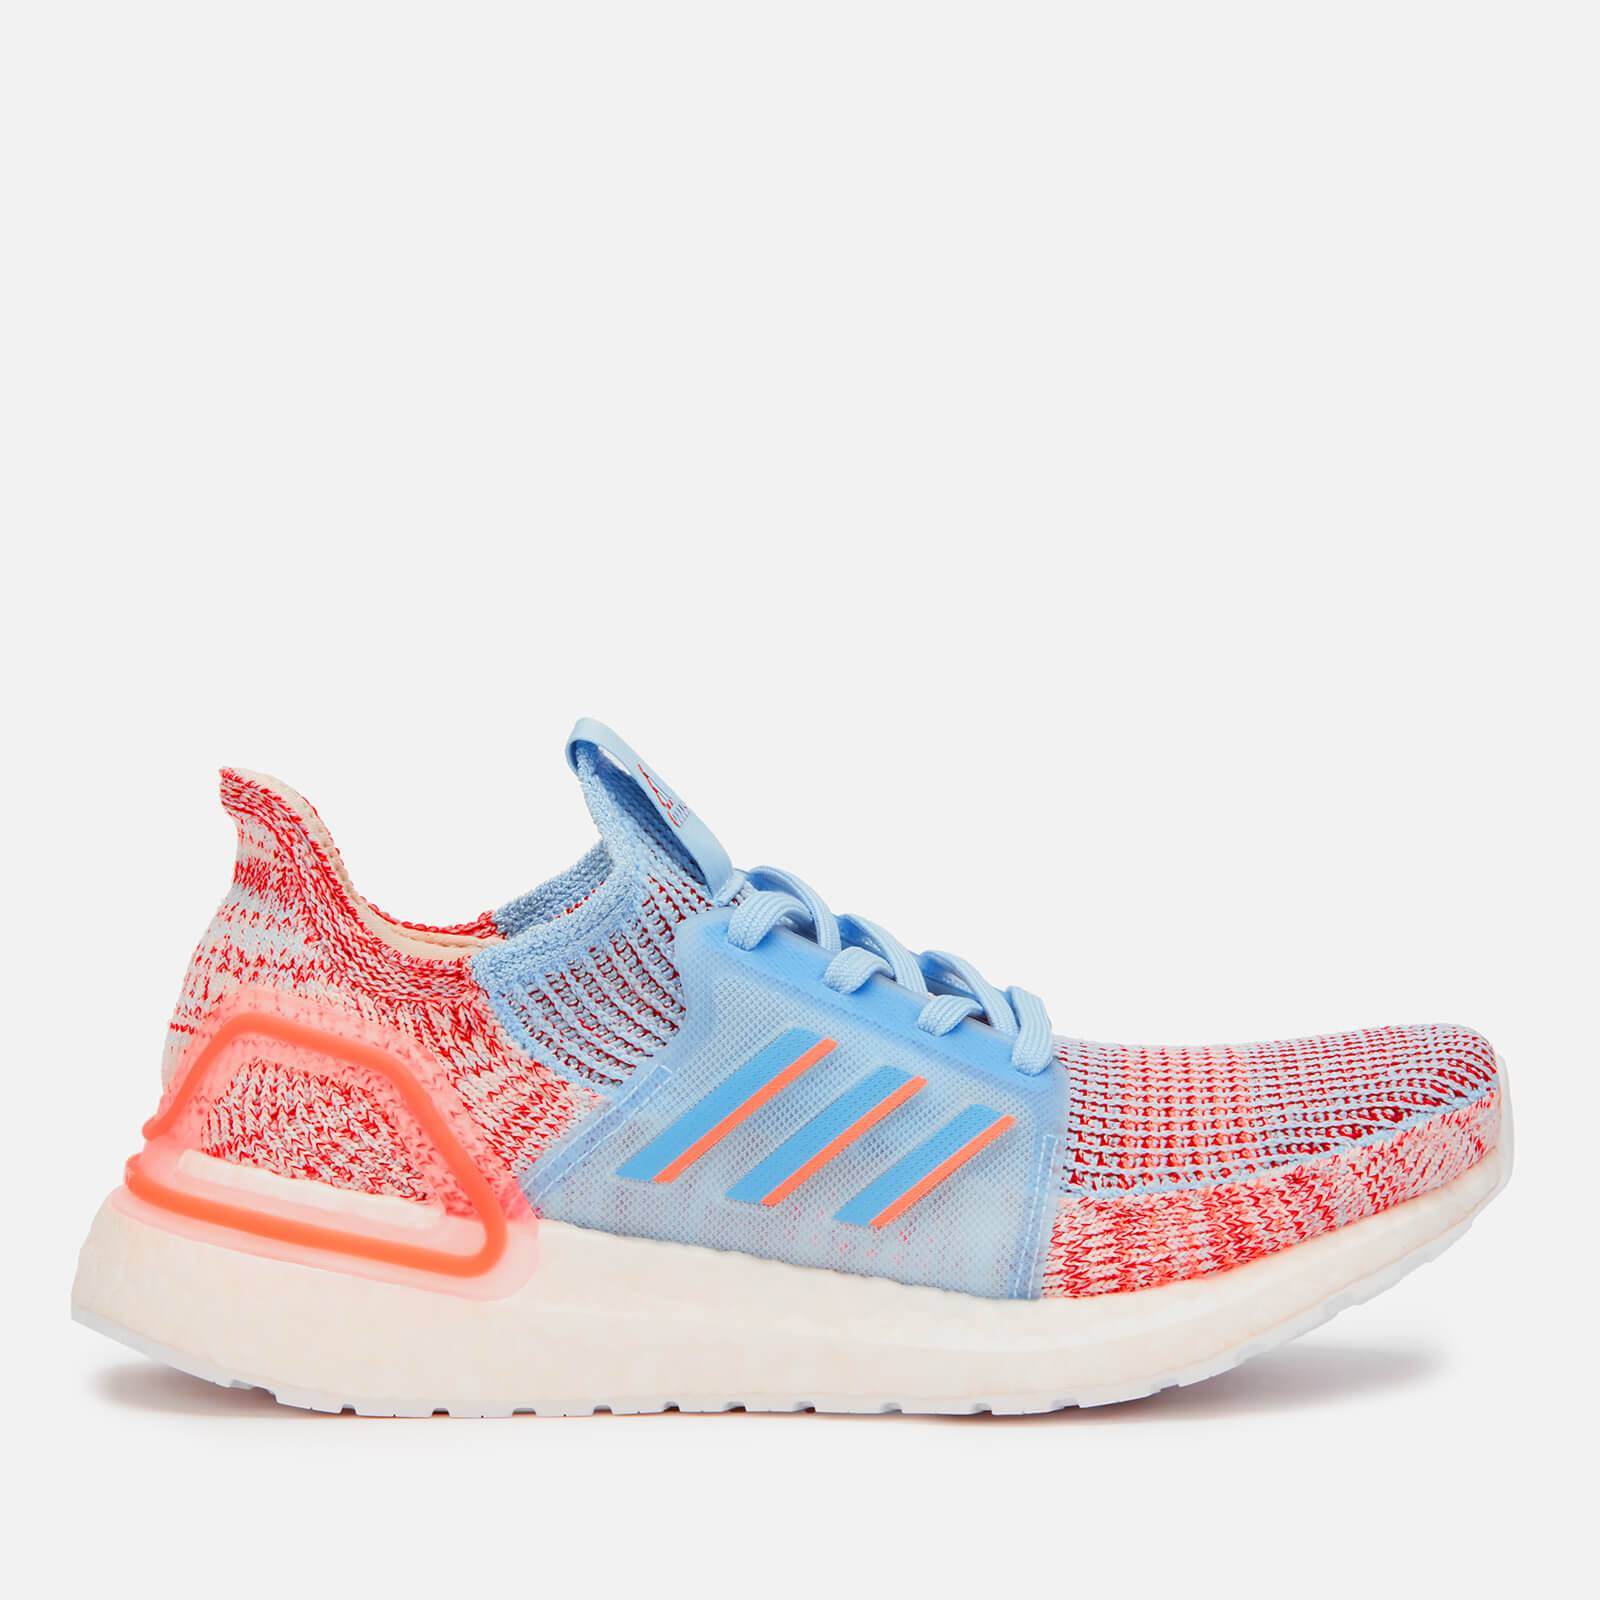 adidas Women's Ultraboost 19 Trainers - Blue/Orange - UK 4 - Multi